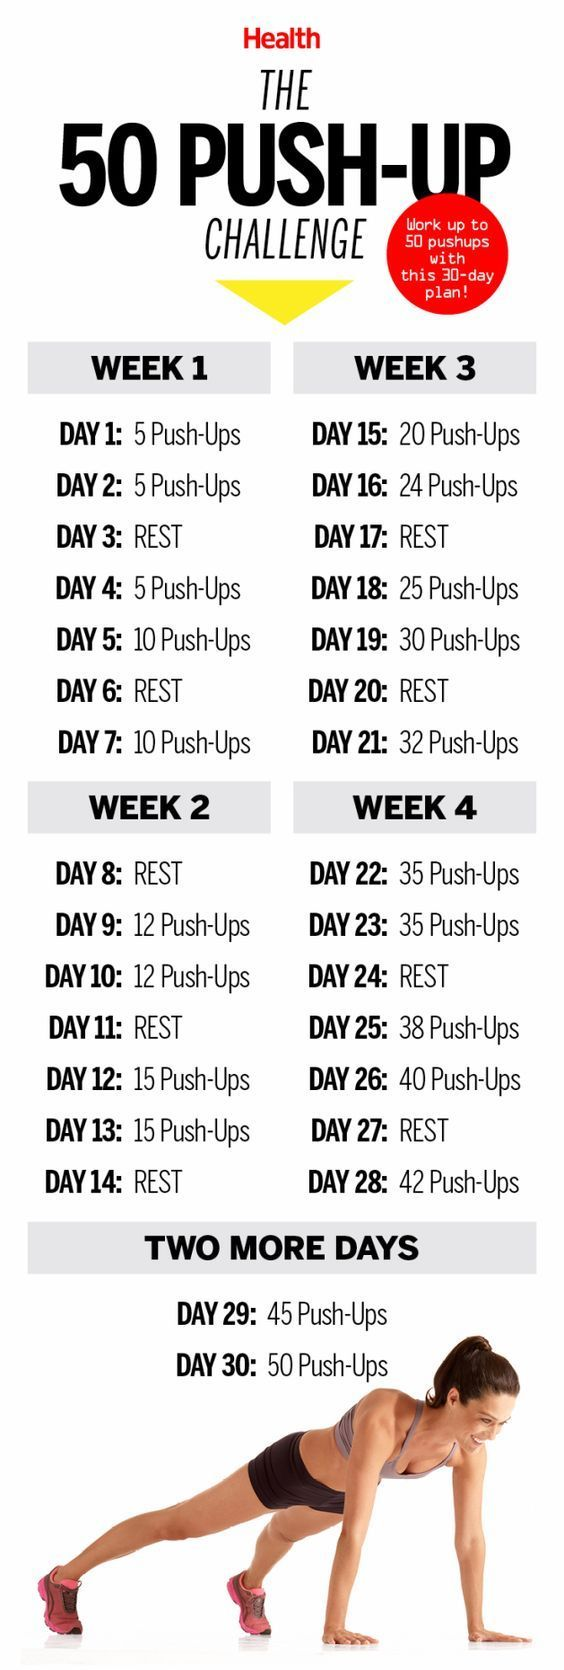 This 50 Push-Up Challenge Will Transform Your Body in 30 Days - Health News and Views - Health.com: